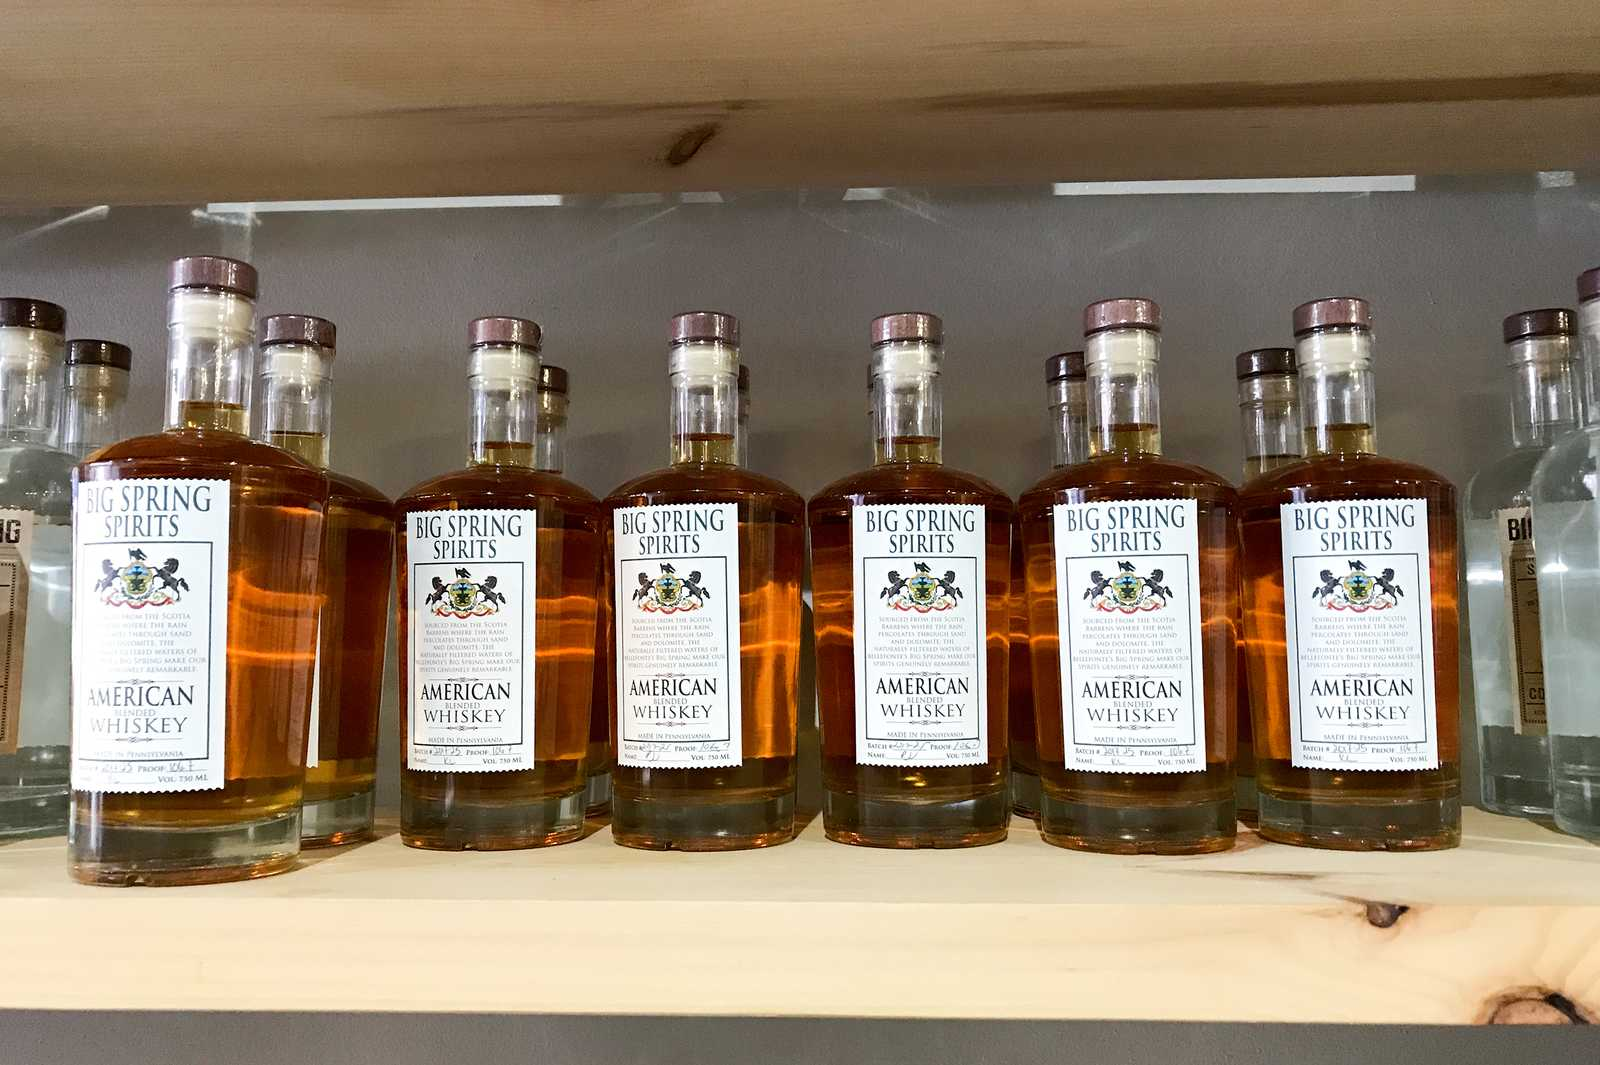 Ein Regal mit Whisky im Pennsylvania Libations Shop in Pittsburgh